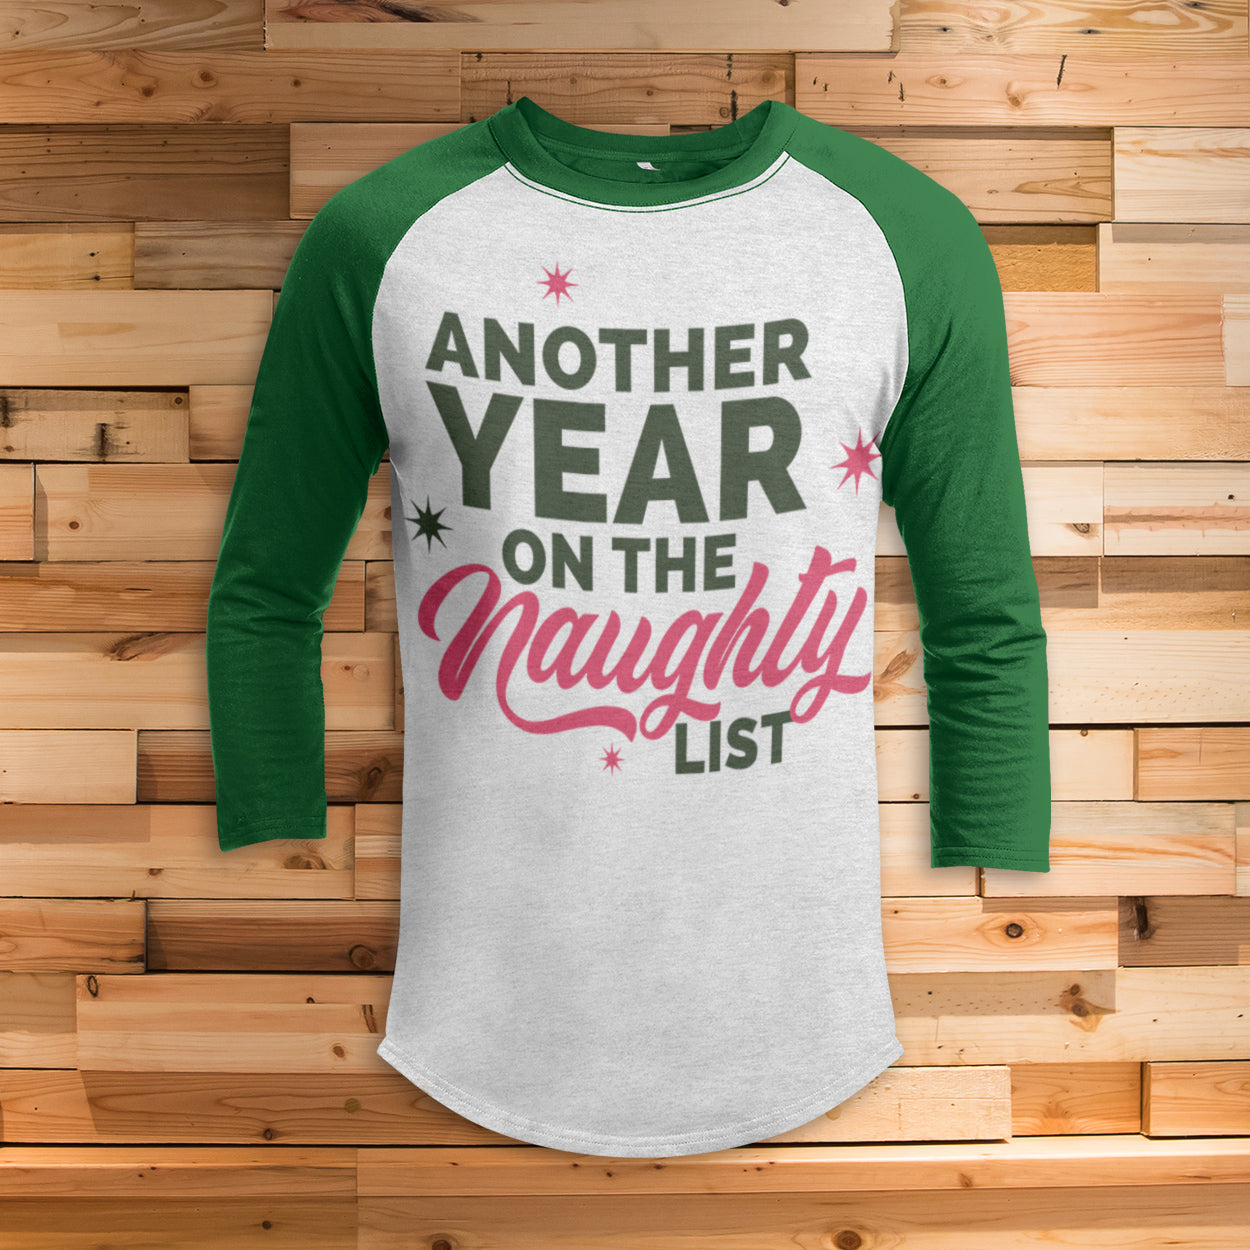 Another Year Naughty List 3/4 Sleeve Raglan